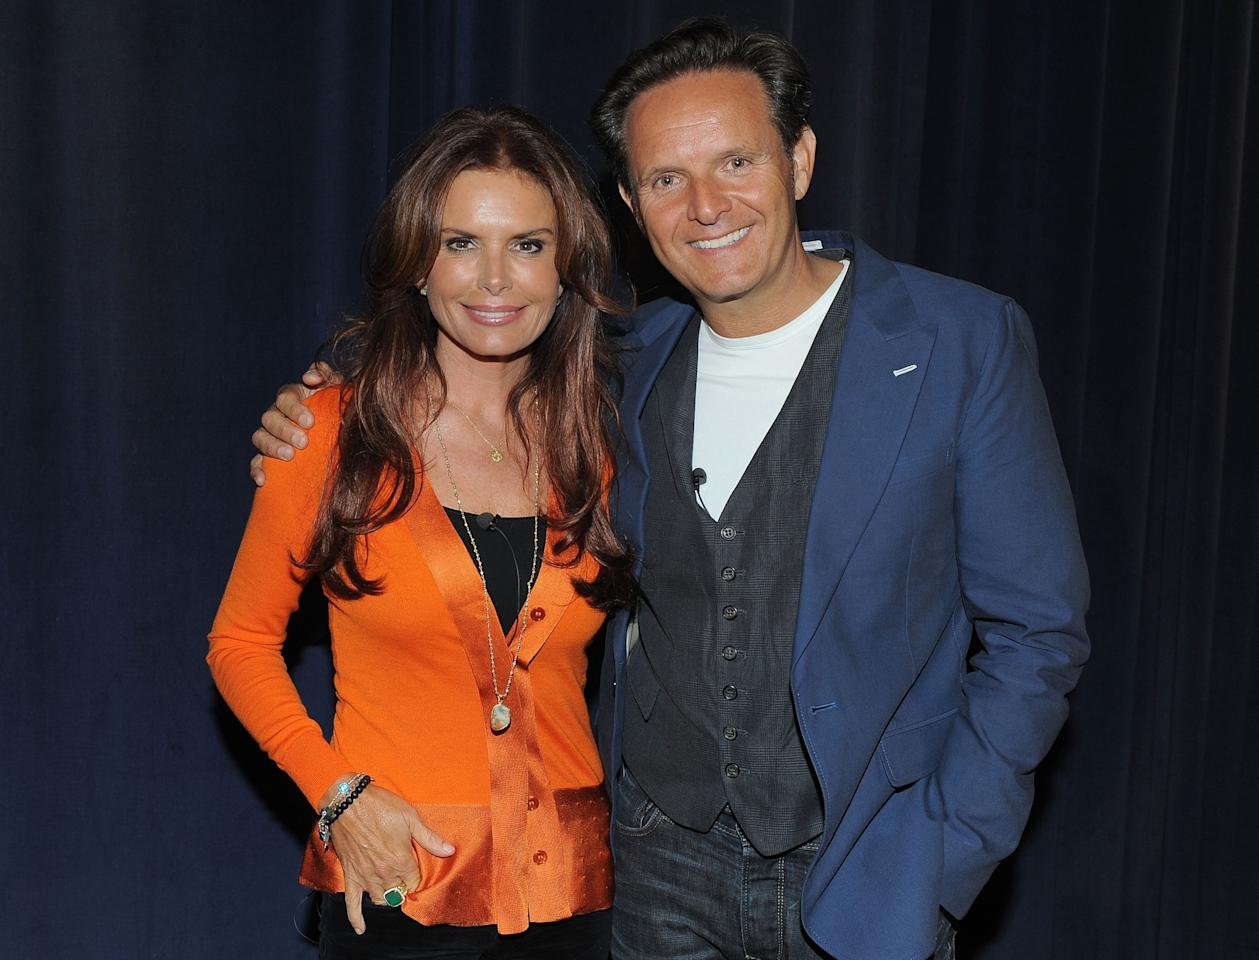 LOS ANGELES, CA - JUNE 12:  Executive Producers Roma Downey and Mark Burnett attend a special event for History's 'The Bible' at Harmony Gold Theatre on June 12, 2013 in Los Angeles, California.  (Photo by Angela Weiss/Getty Images for History)